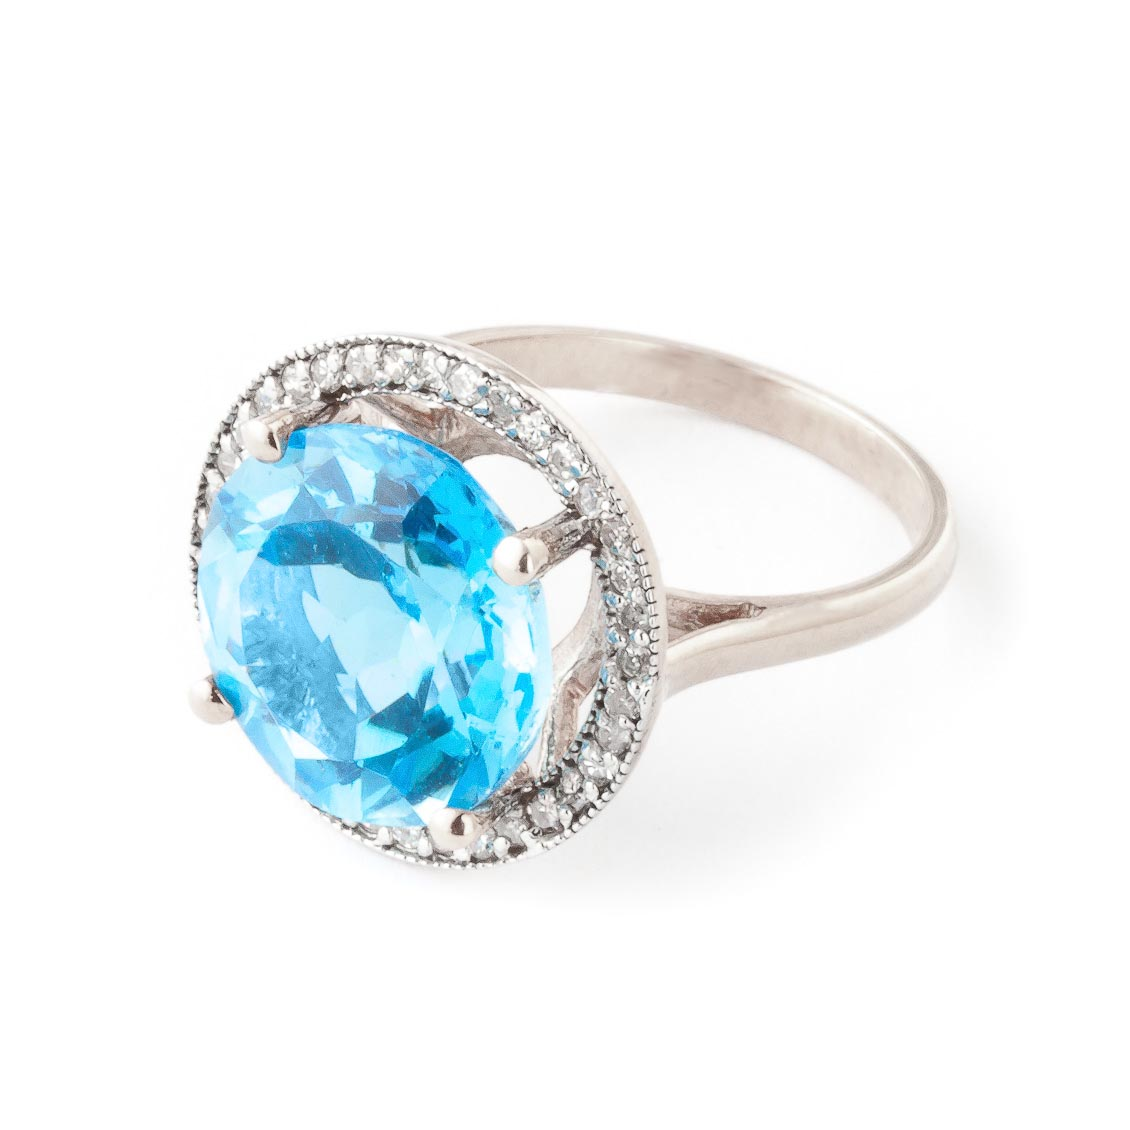 Blue Topaz Halo Ring 8 ctw in 18ct White Gold